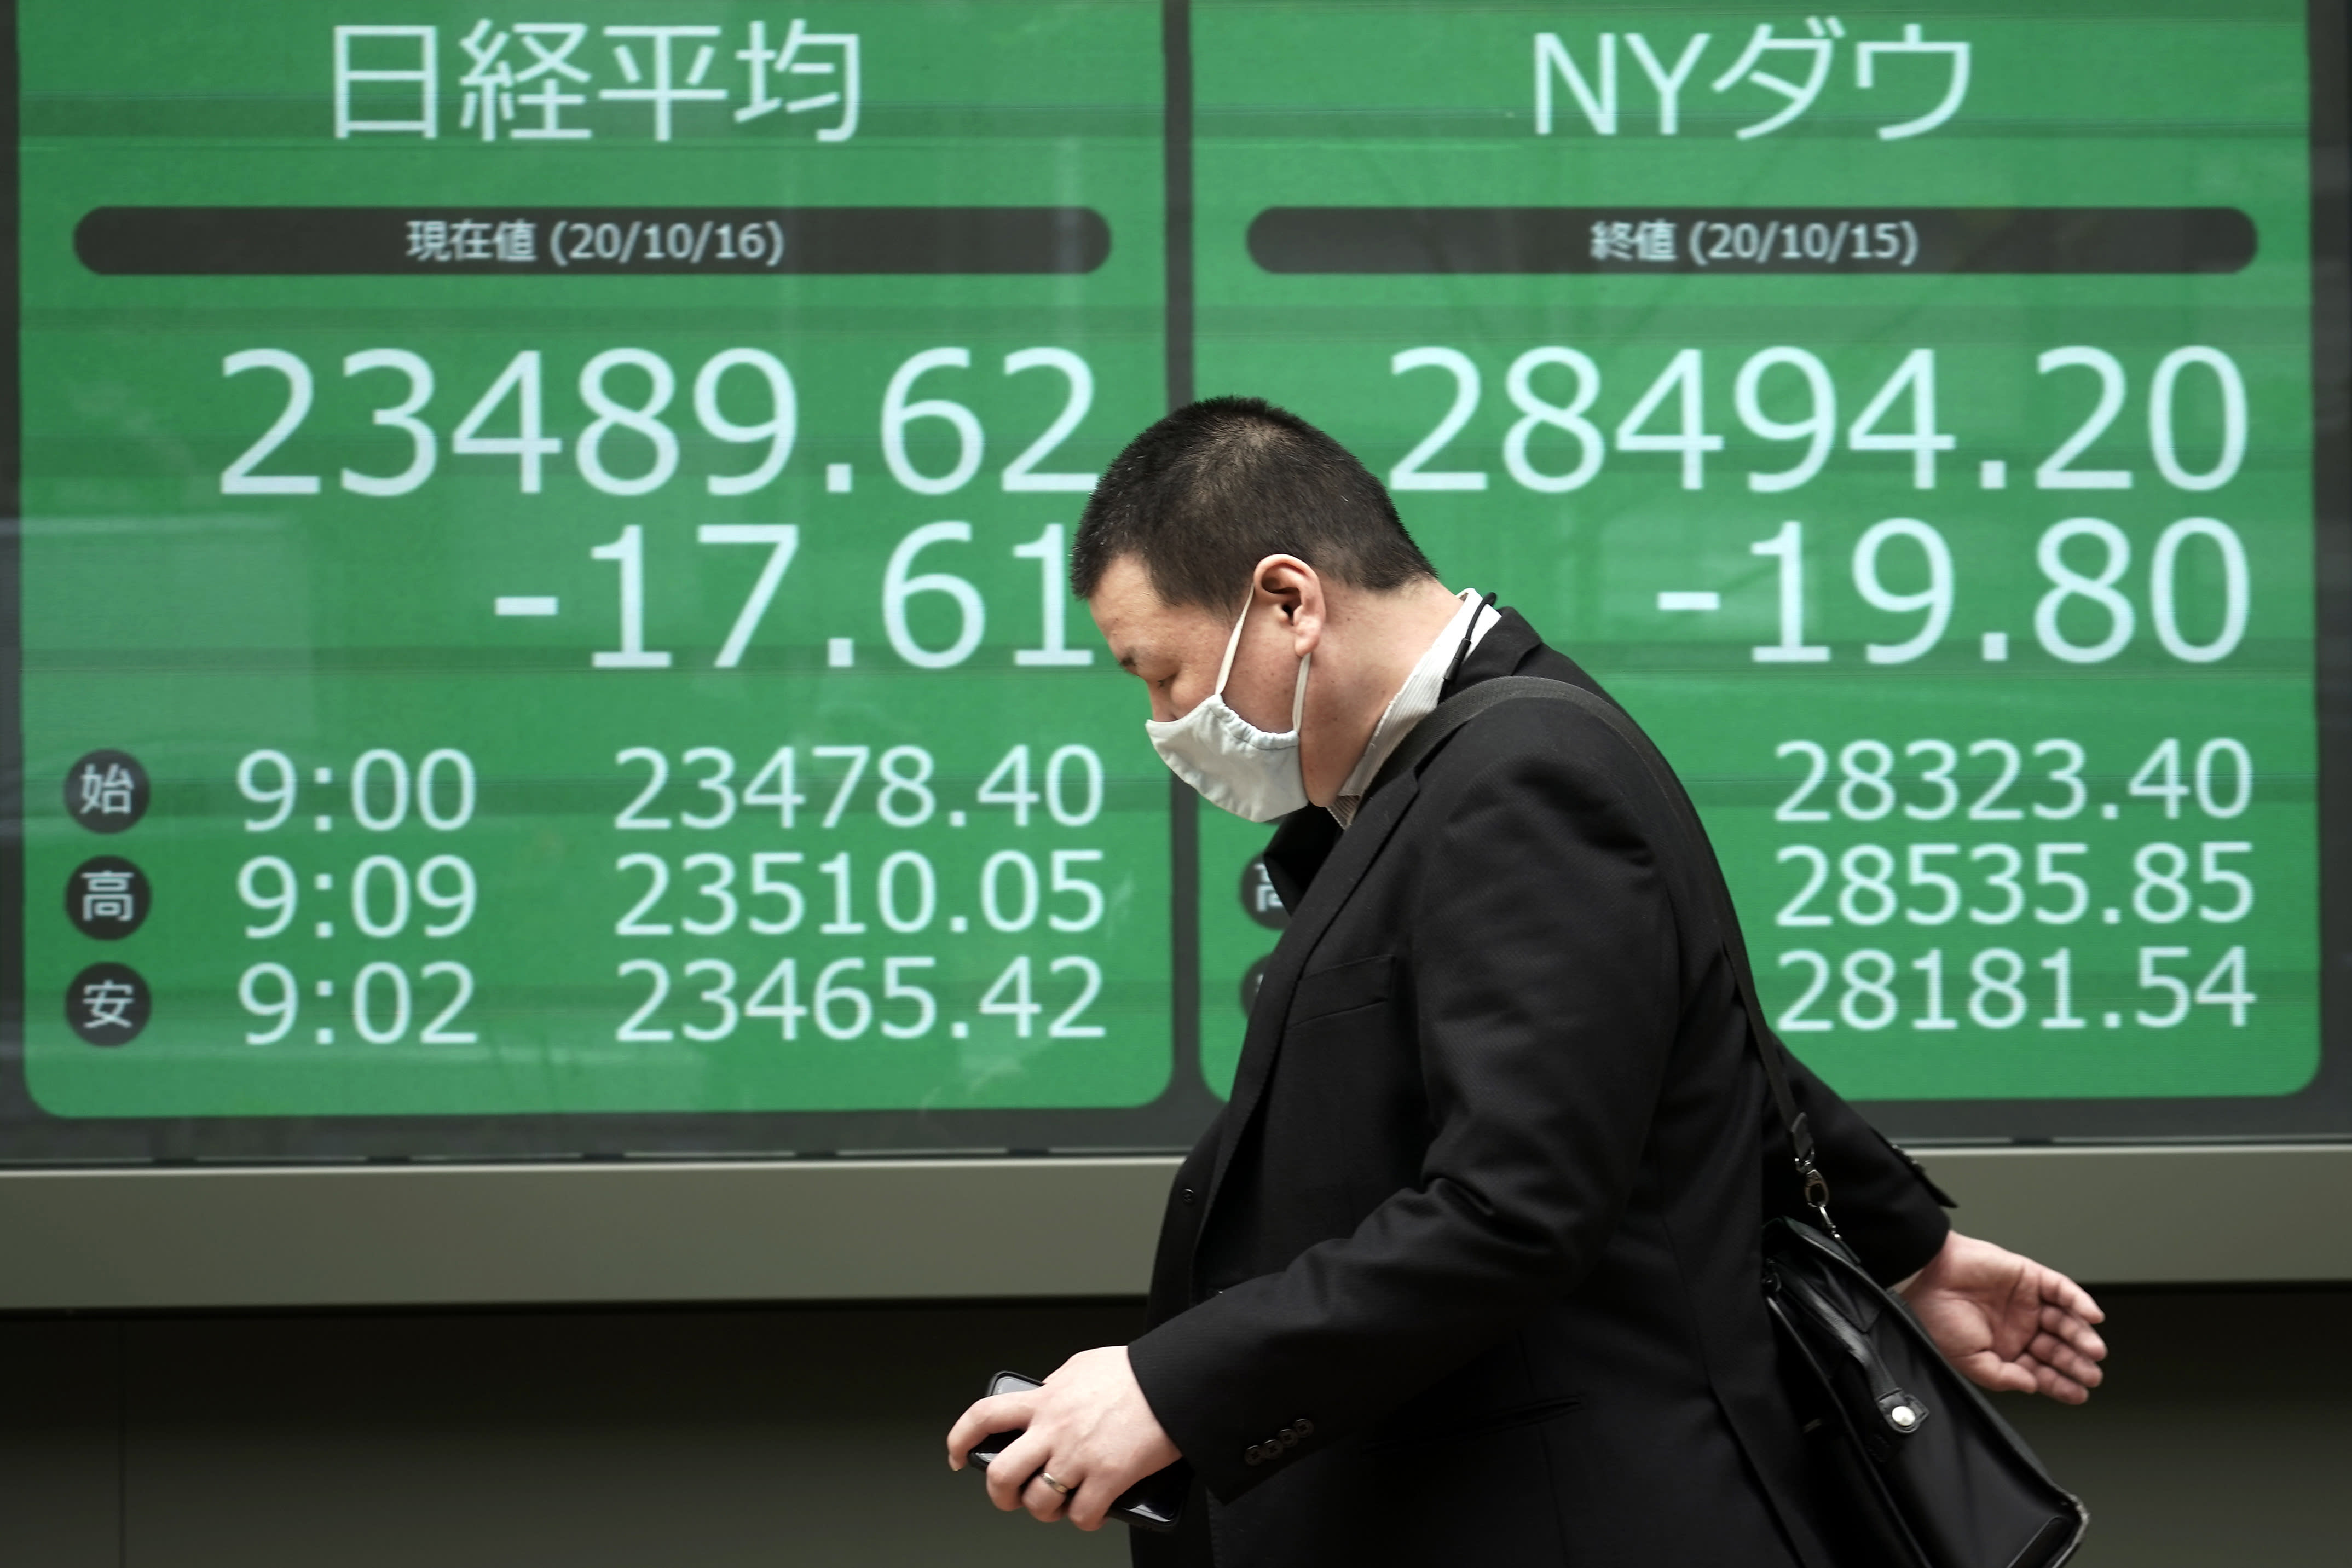 A man walks past an electronic stock board showing Japan's Nikkei 225 and New York Dow indexes at a securities firm in Tokyo Friday, Oct. 16, 2020. Asian shares were mixed on Friday as investors weighed concerns about the U.S. presidential election and an economic stimulus package, on top of fears of flaring outbreaks of coronavirus. (AP Photo/Eugene Hoshiko)